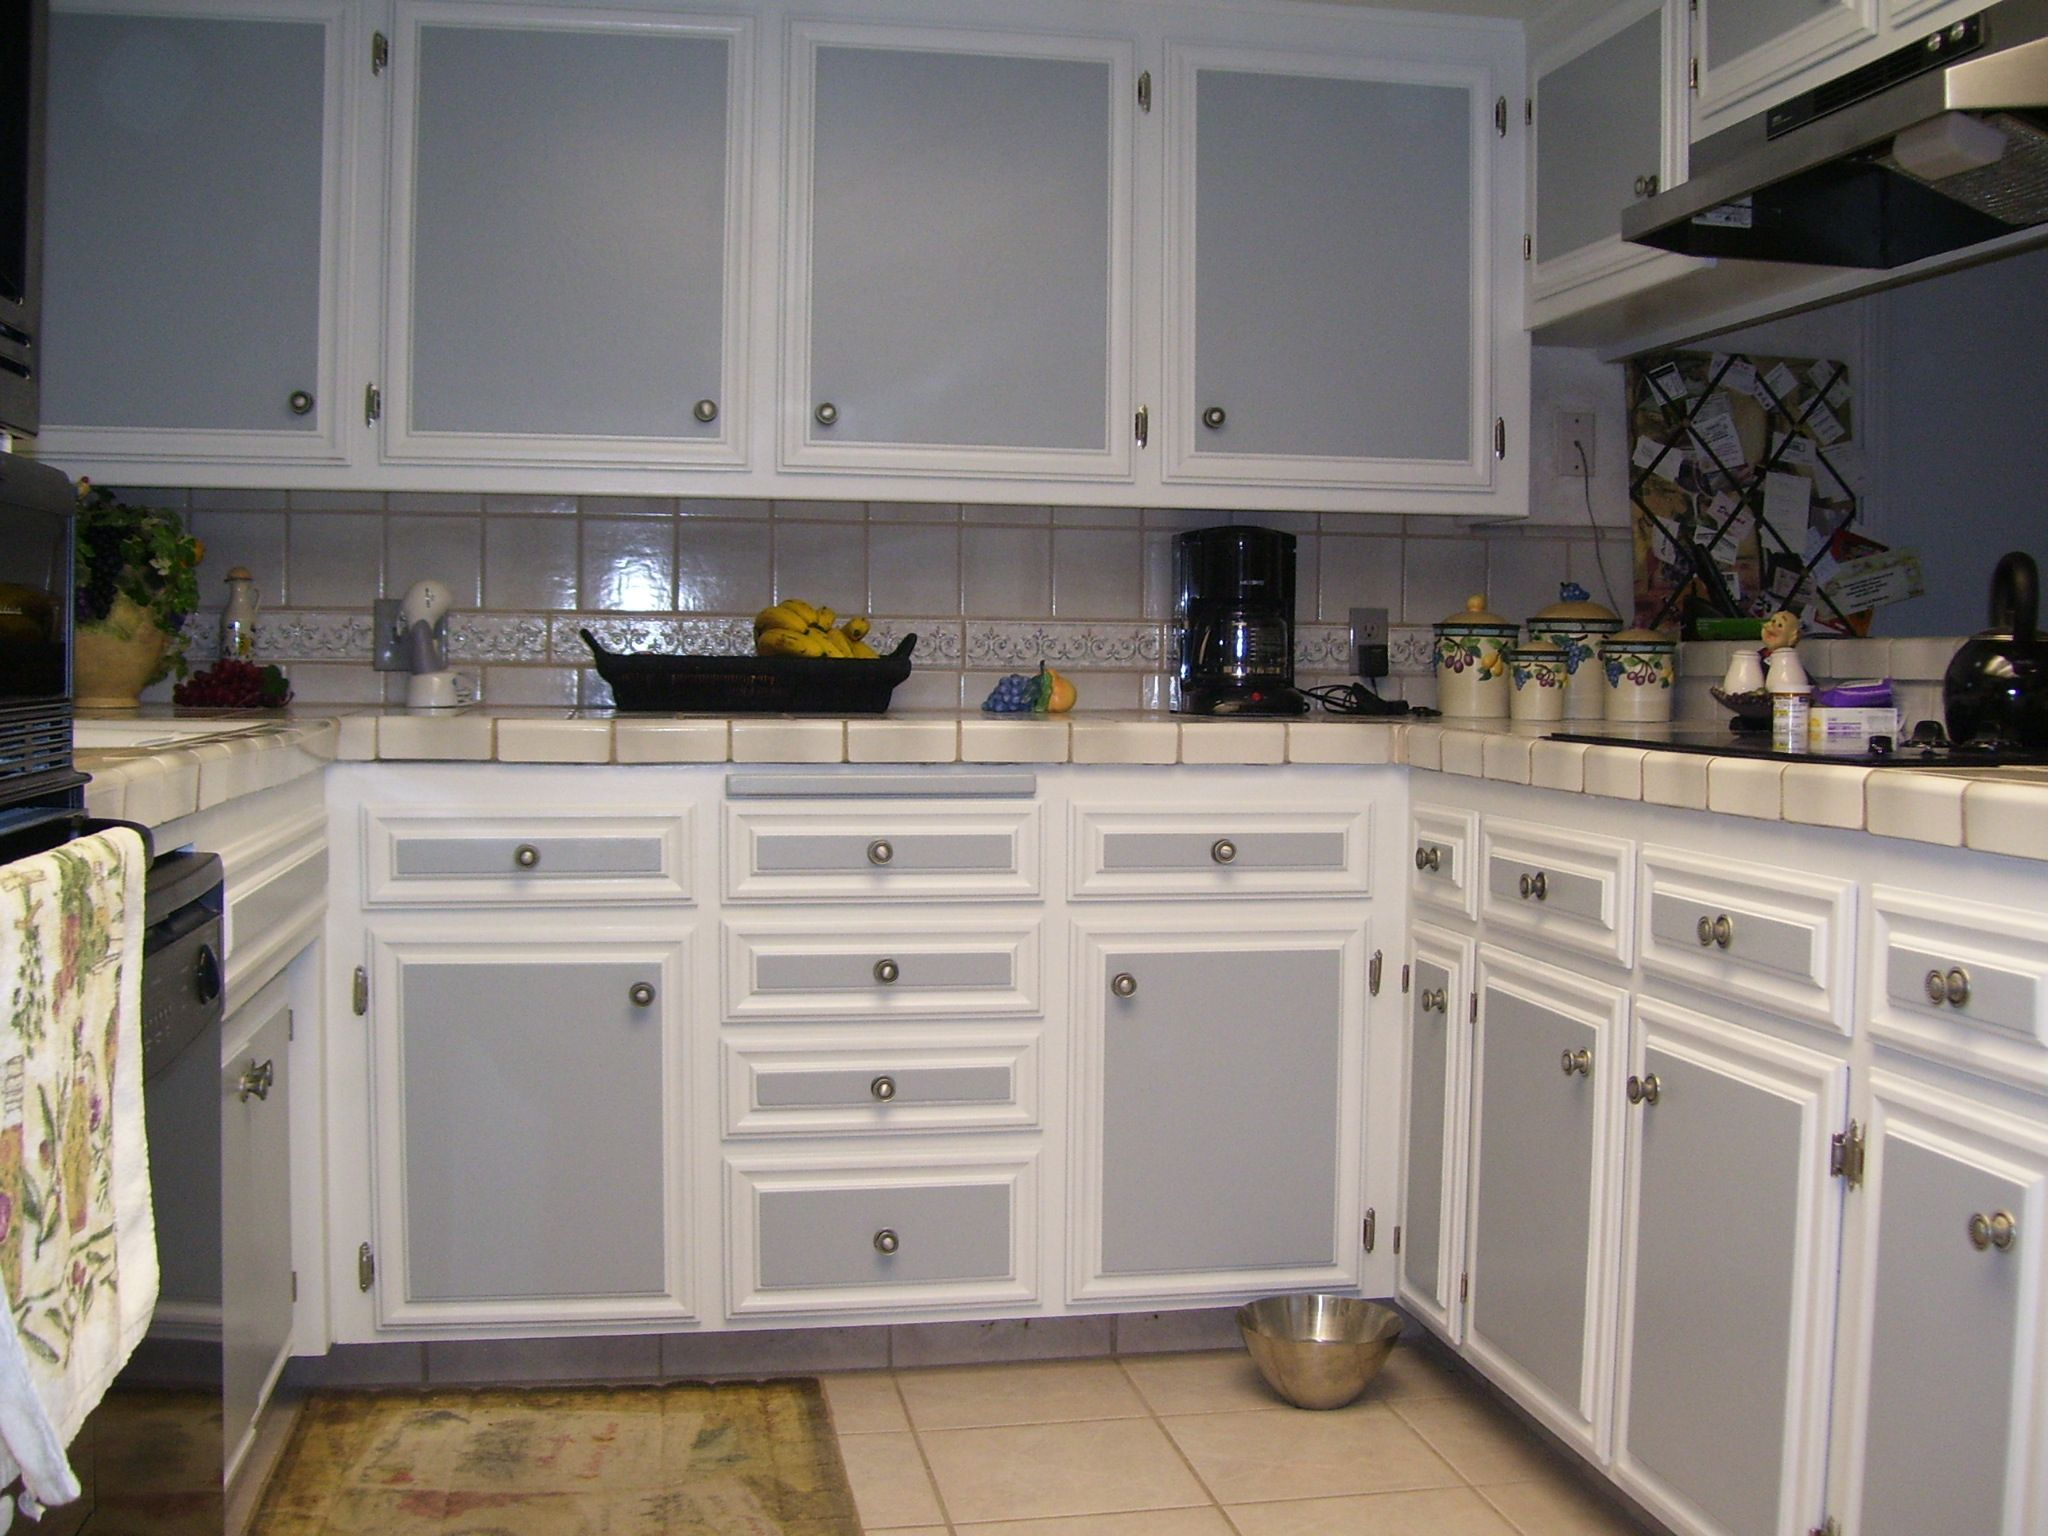 The Kitchen Cabinet #26: Kitchen:White Kitchen Cabinet Grey Door Brown Tile Floor Ceramic Tile Wall Banana Brown Bowl